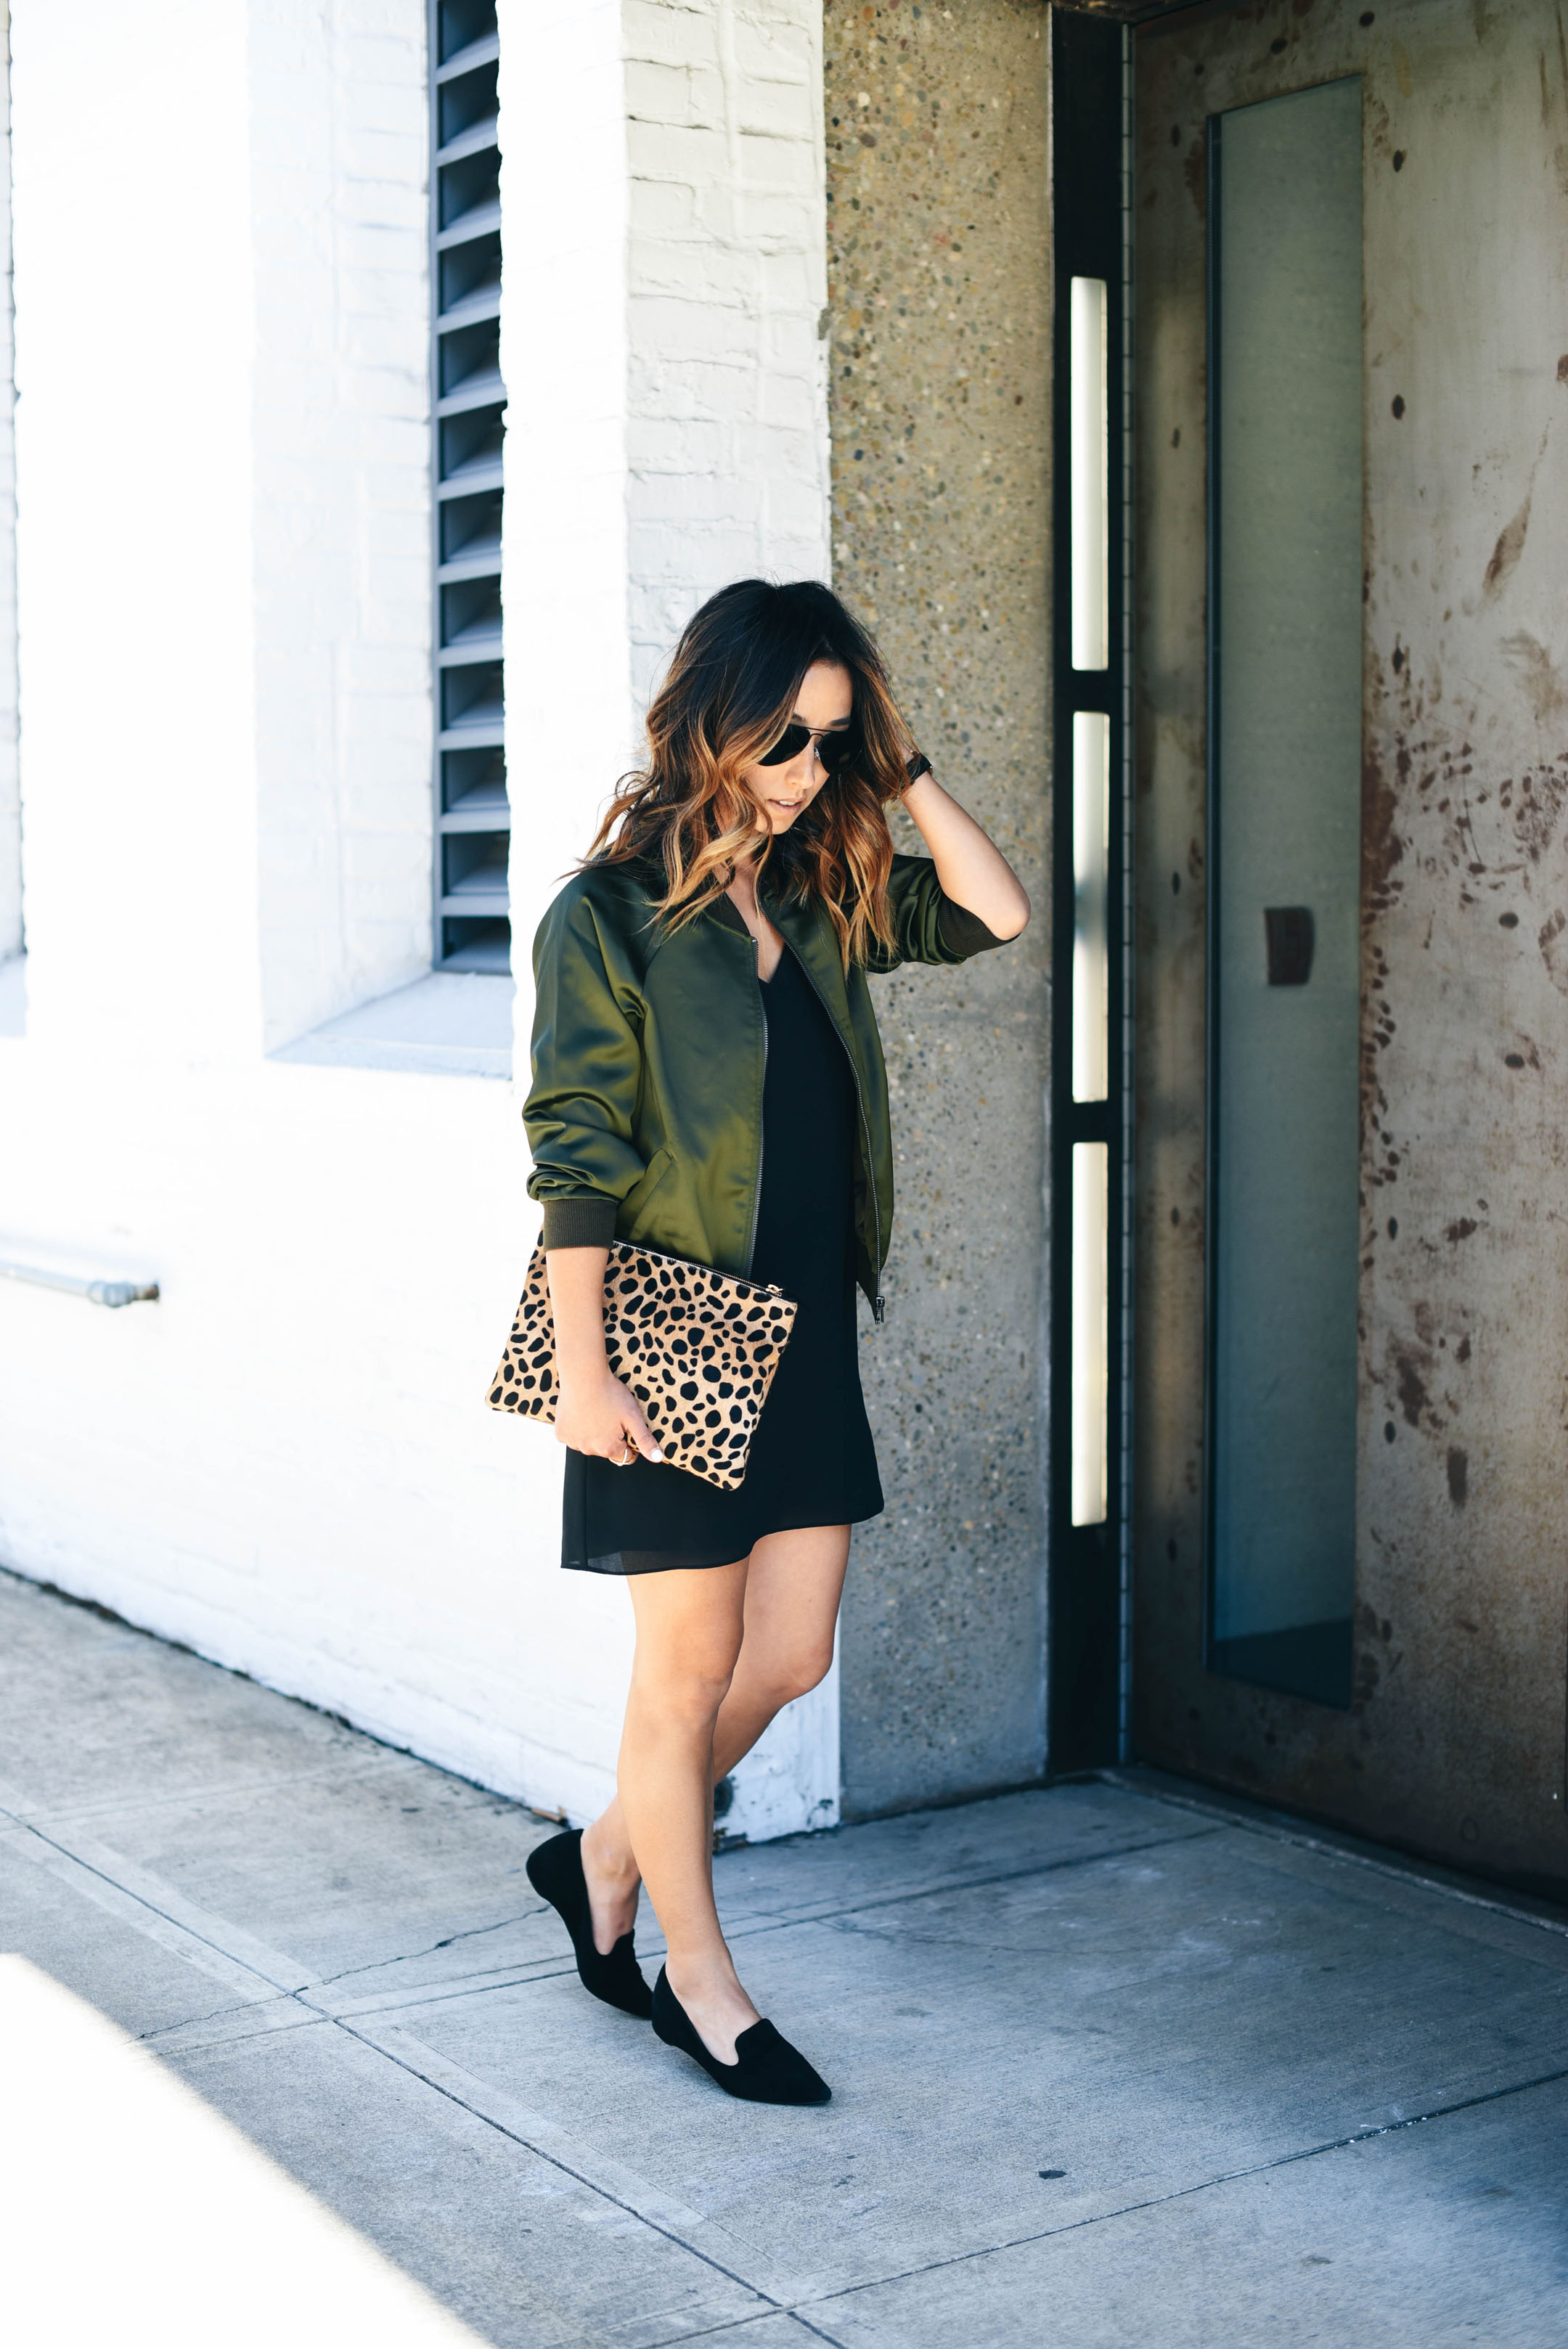 Bomber jacket with slip dress